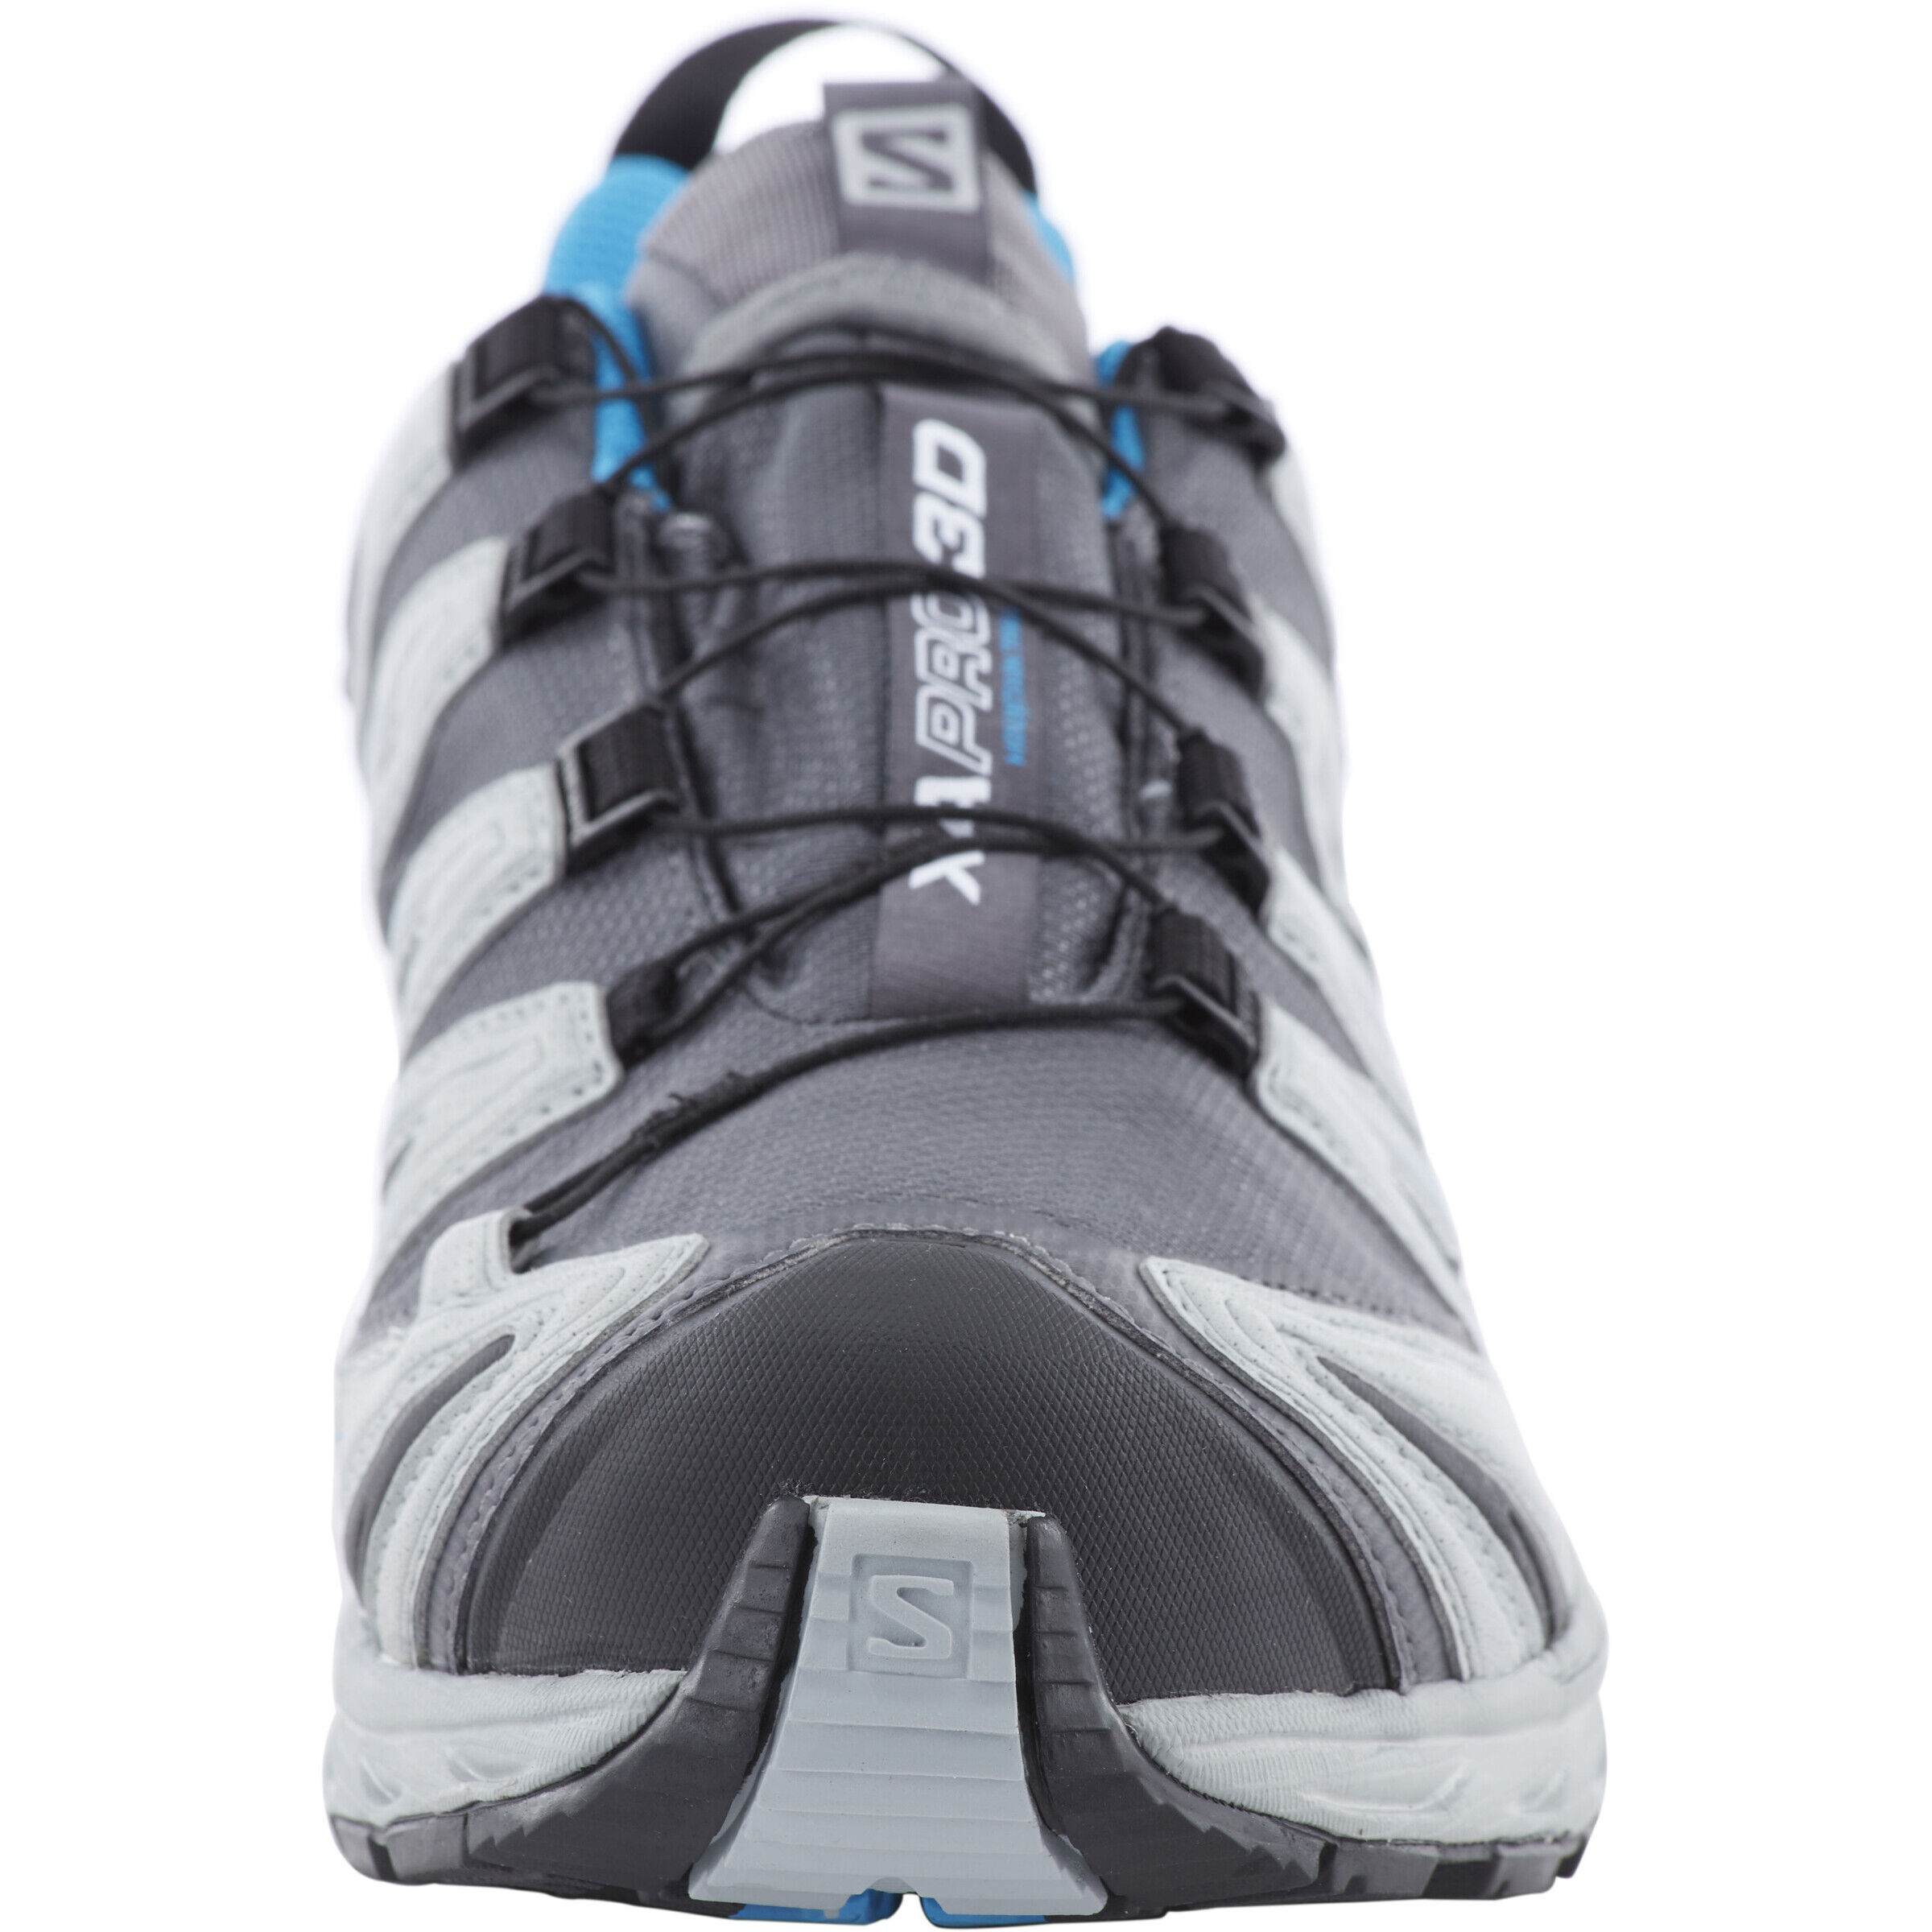 Salomon XA Pro 3D GTX Trailrunning Schuhe Herren dark cloudlight onixmethyl blue